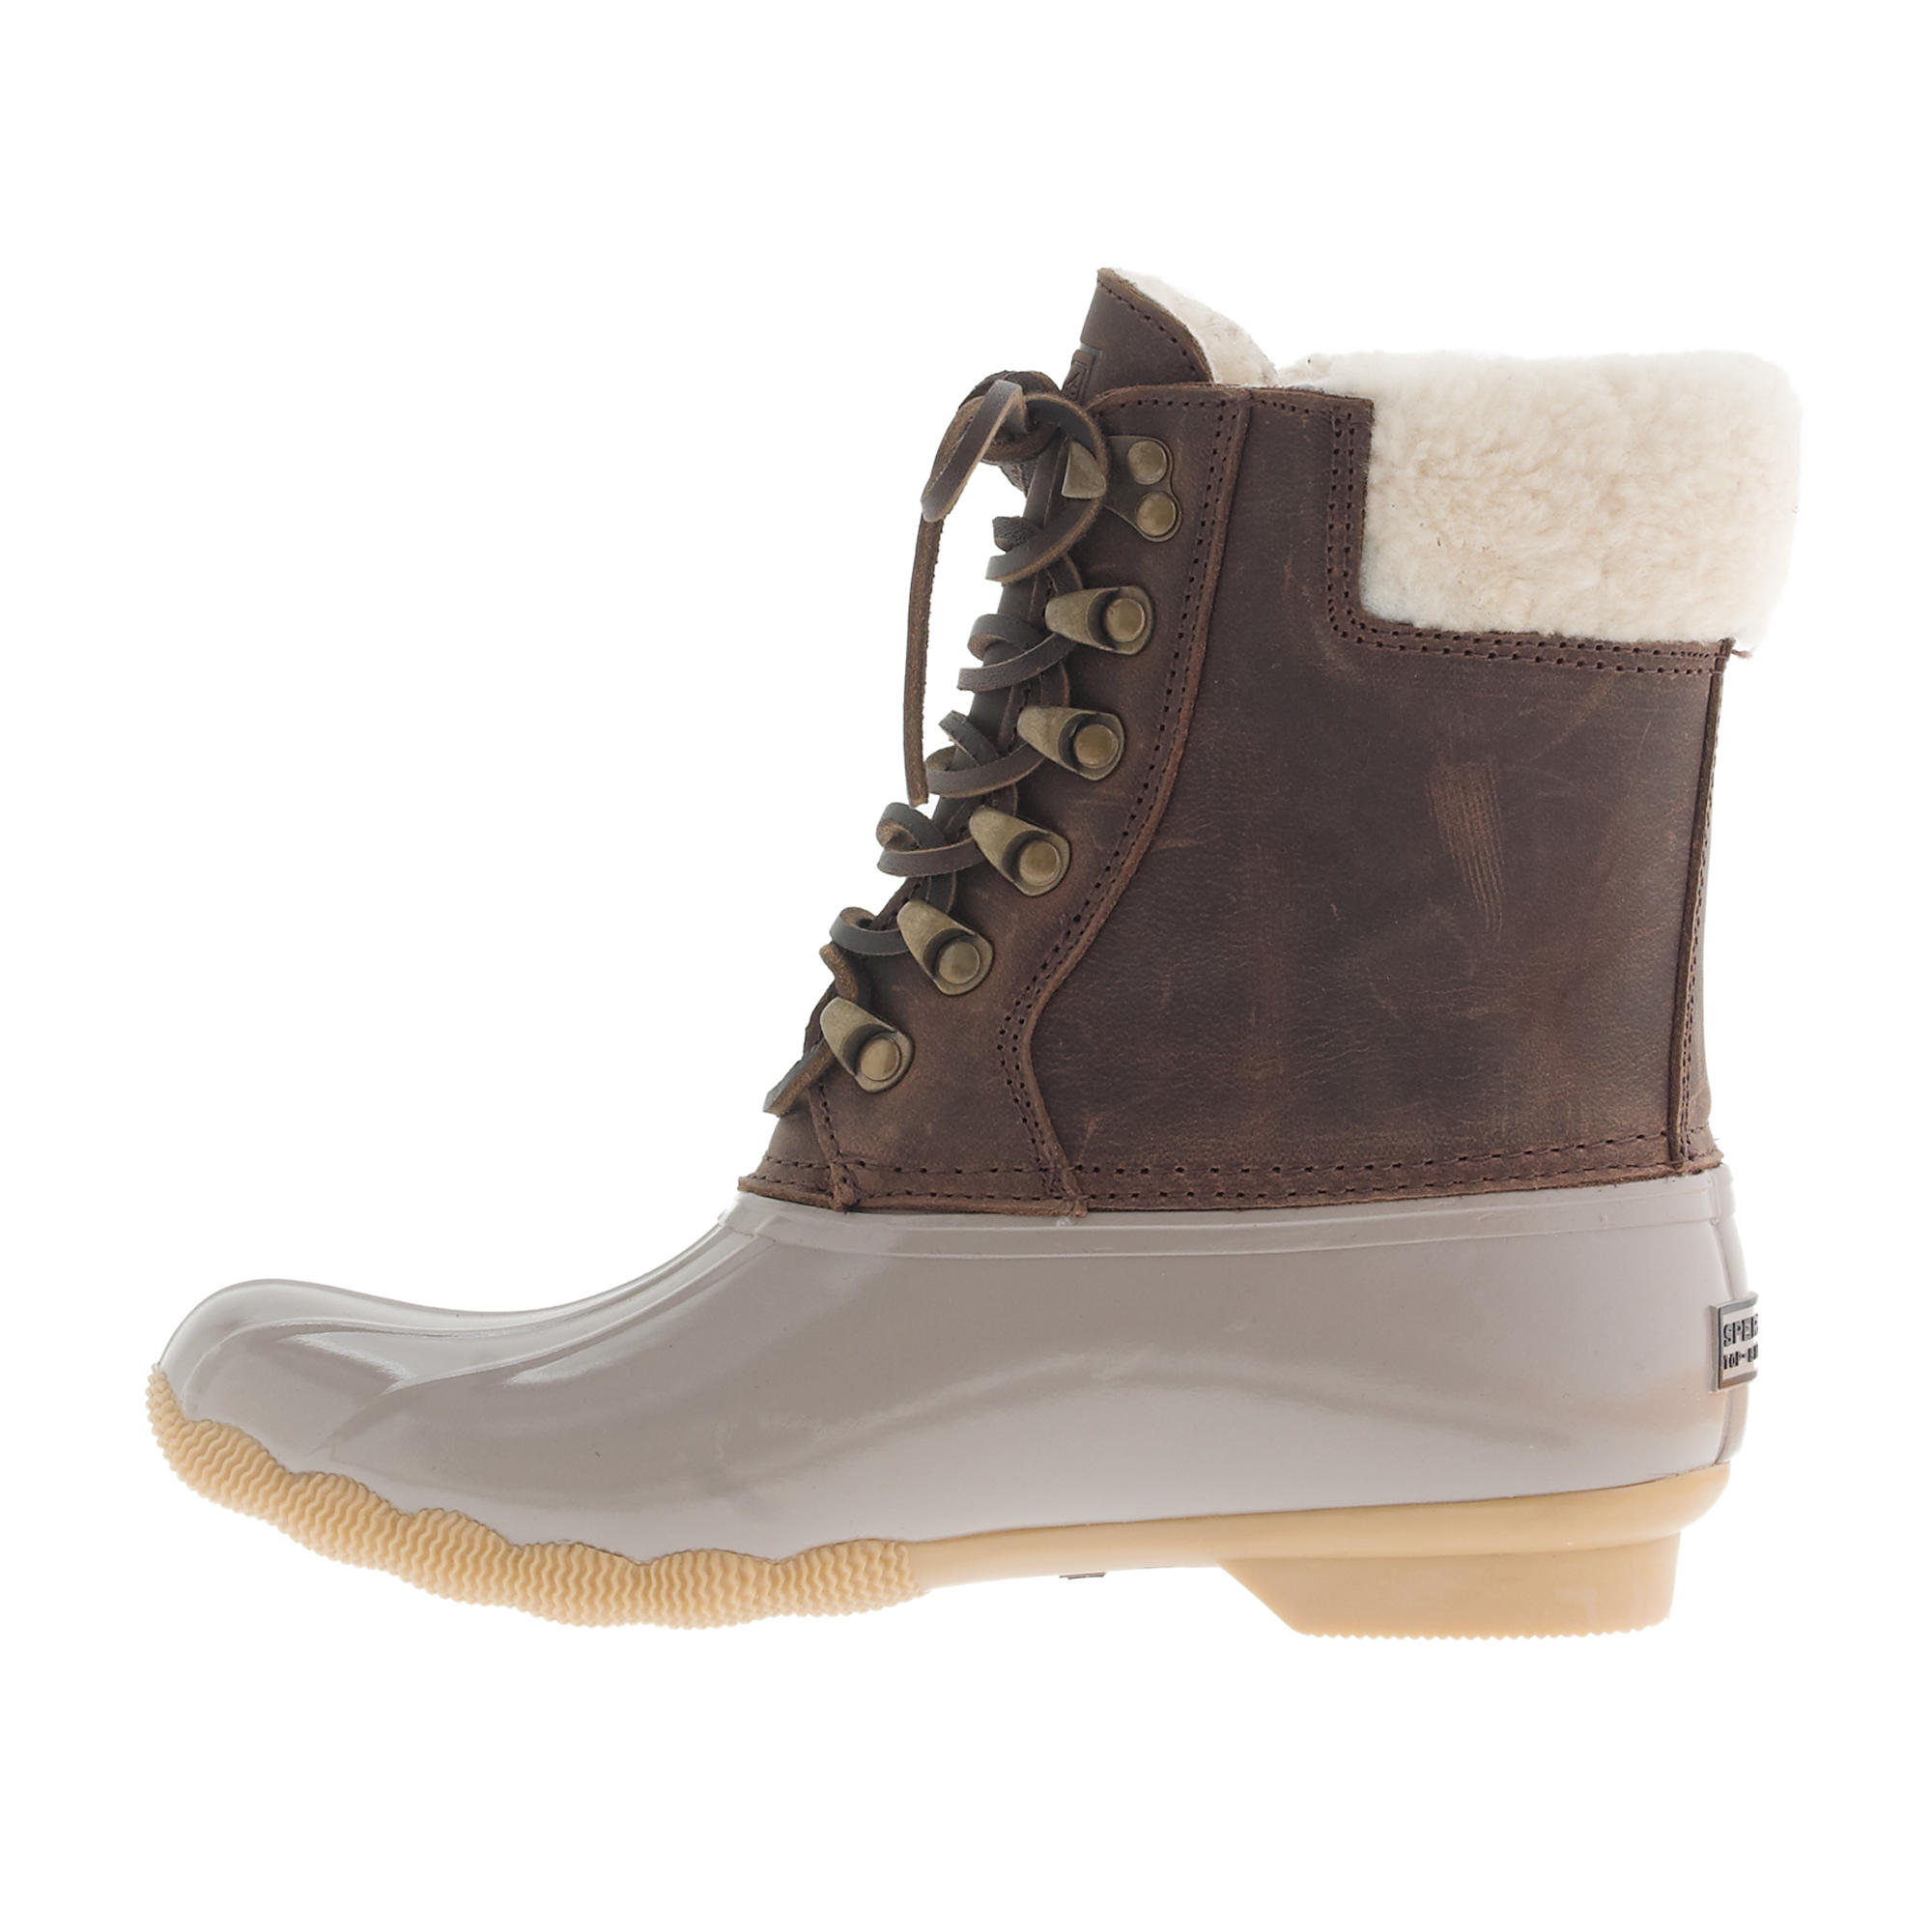 Women s Sperry Top Sider for J Crew Shearwater boots